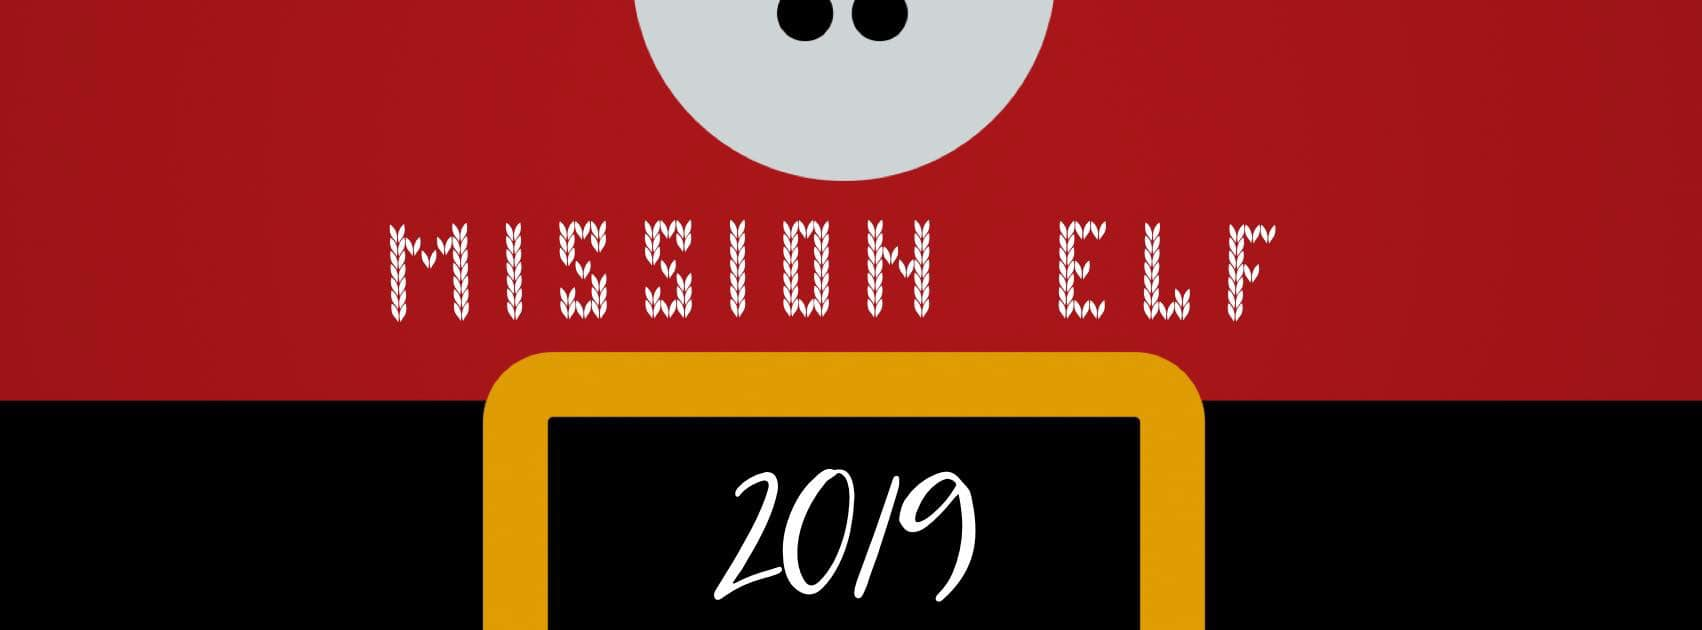 Santa Suit with Mission Elf 2019 overlay